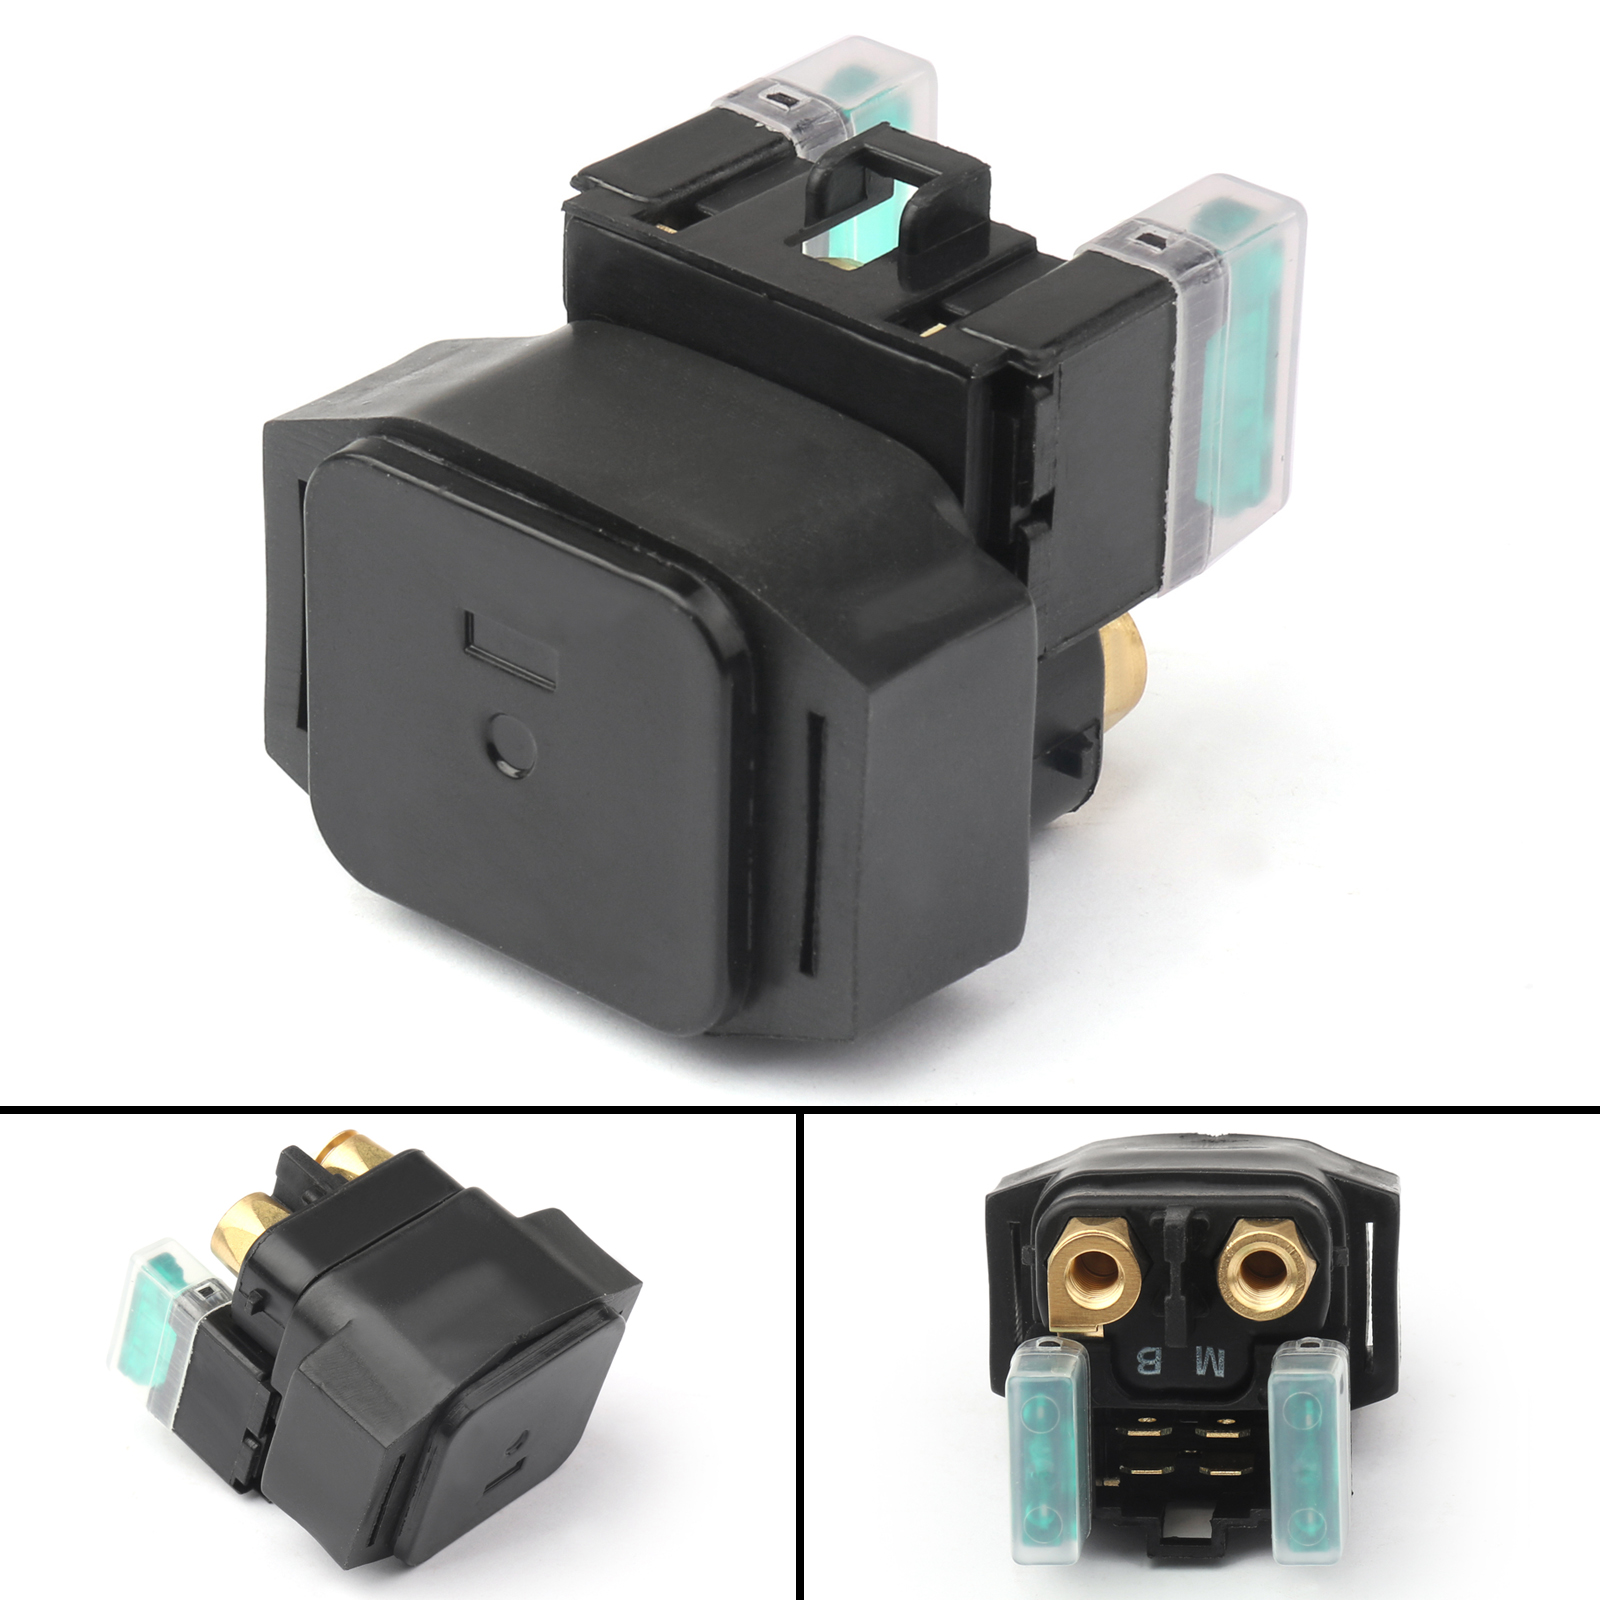 Starter Relay Solenoid For Yamaha Fjr1300 Yzf R1 R6 R7 1959 Ford Wiring Aftermarket Condition 100 Brand New Voltage 12v Manufacturer Part Number1 5jw 81940 005jw 024dn 004dn 10